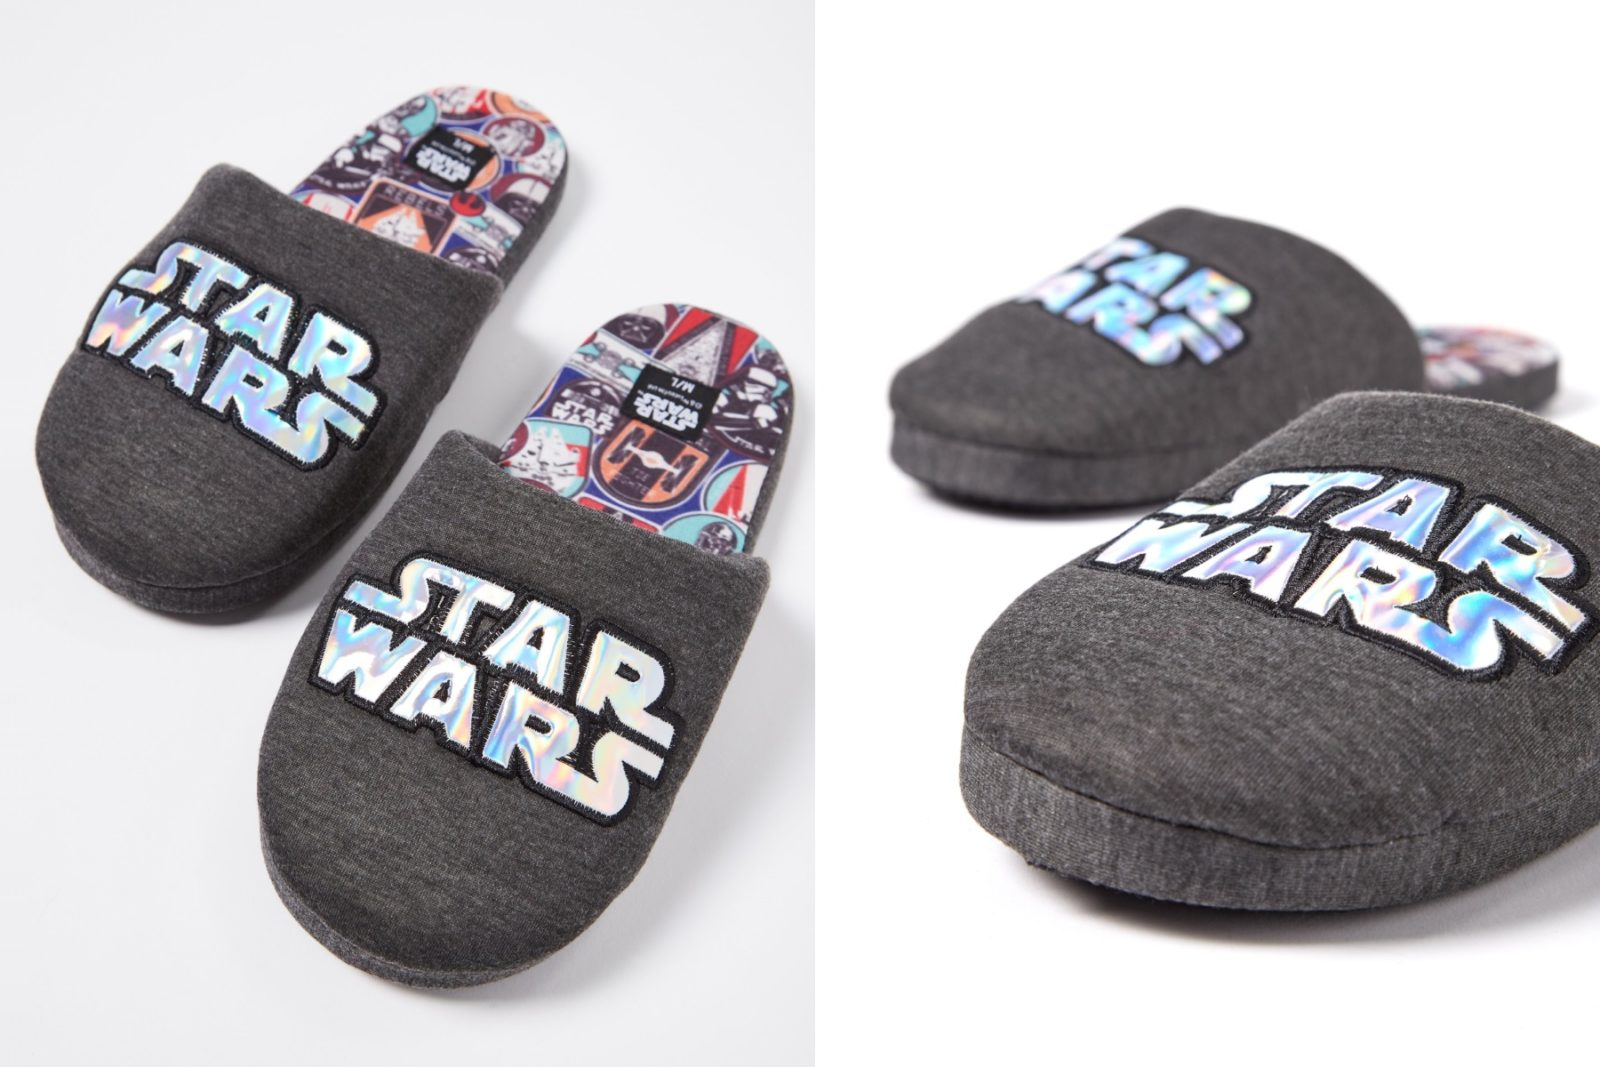 New Star Wars Slippers at Cotton On NZ